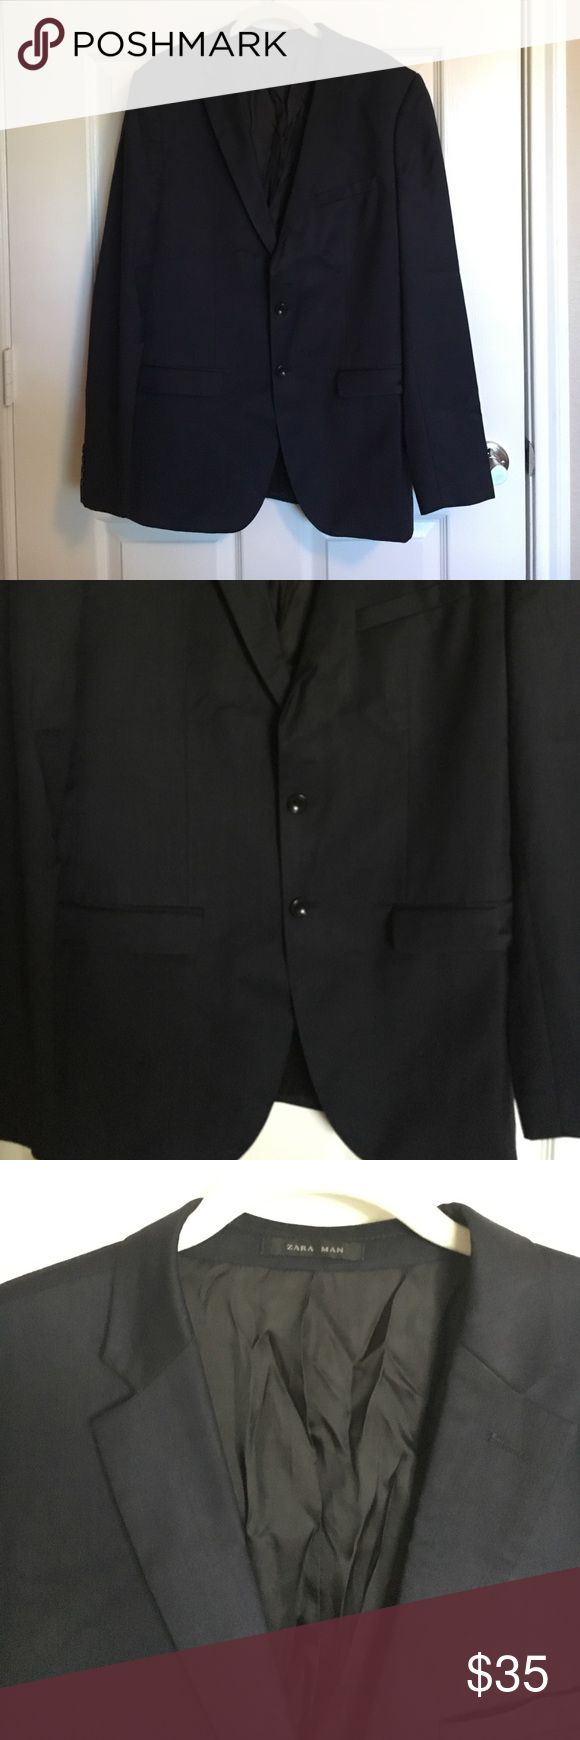 Black Zara Suit Jacket Black men's suit jacket, worn only once. Perfect condition, only needs some ironing. Zara Suits & Blazers Sport Coats & Blazers